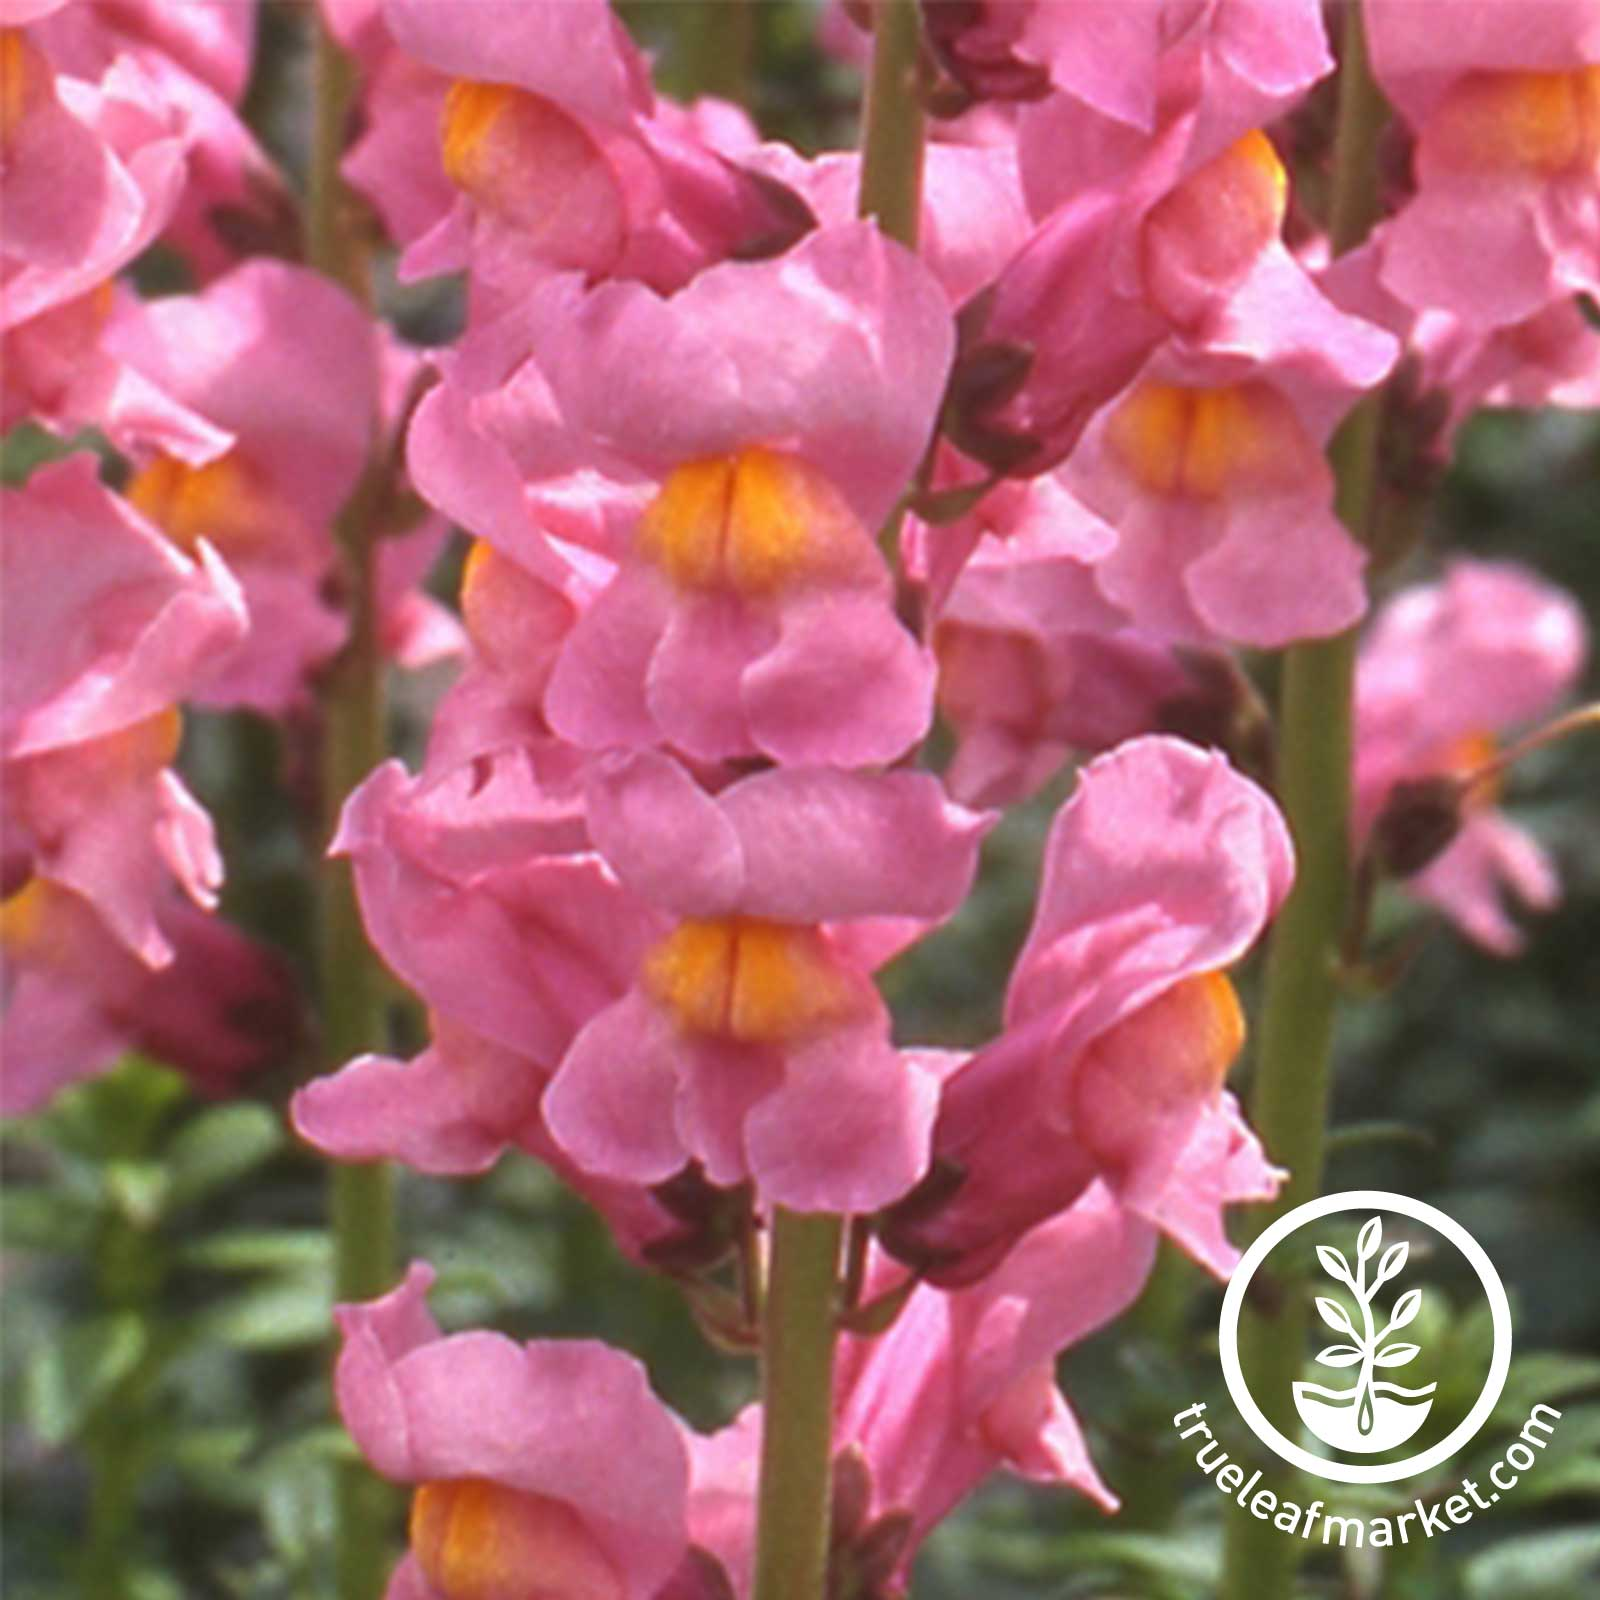 Snapdragon Rocket Series Rose Seed